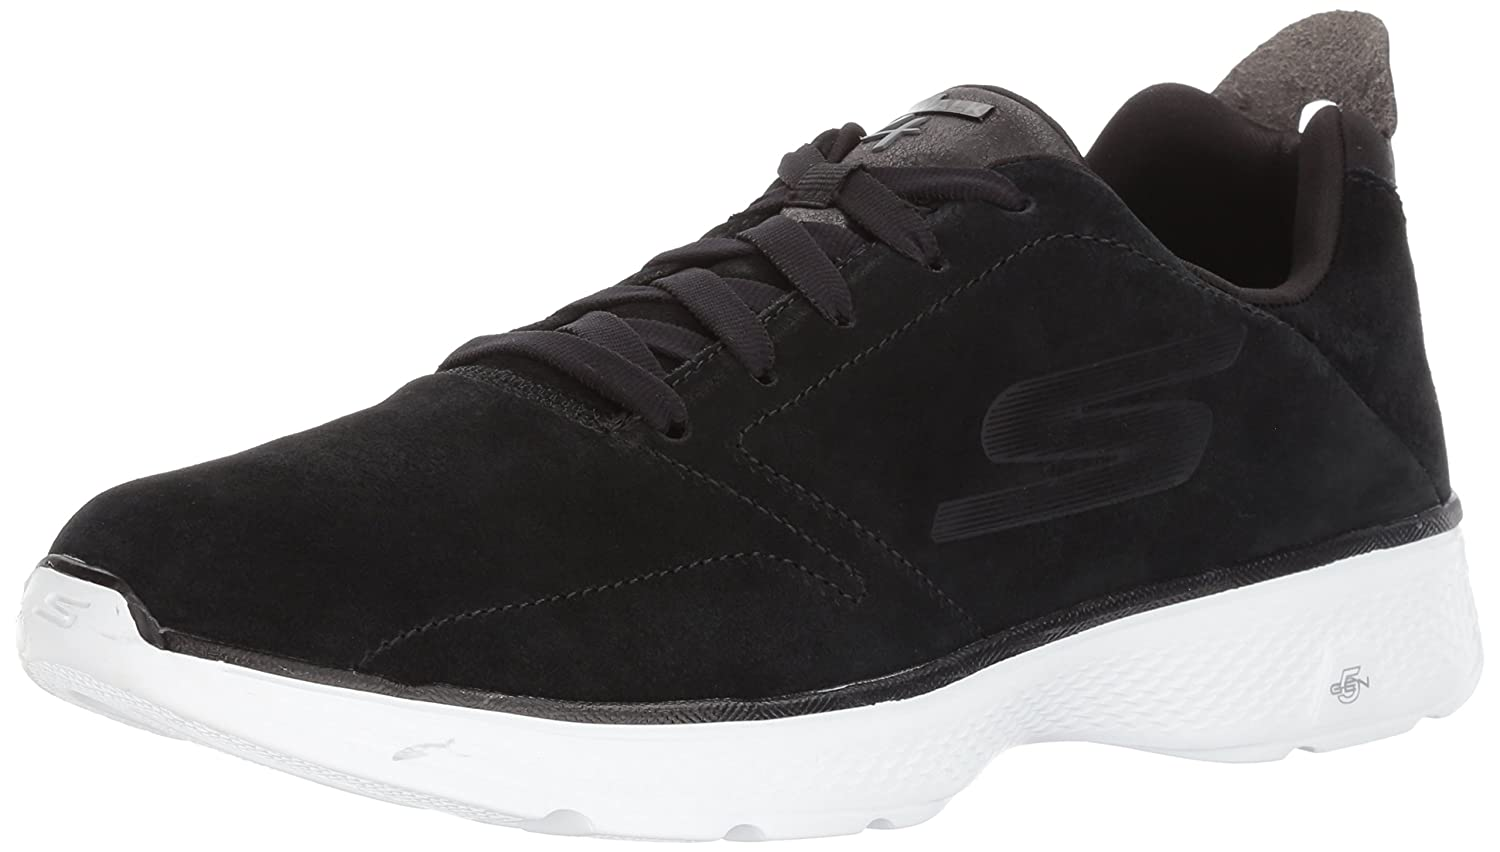 Skechers Performance Men's Go Walk 4 Acclaim Walking Shoe 11.5 D(M) US|Black/White